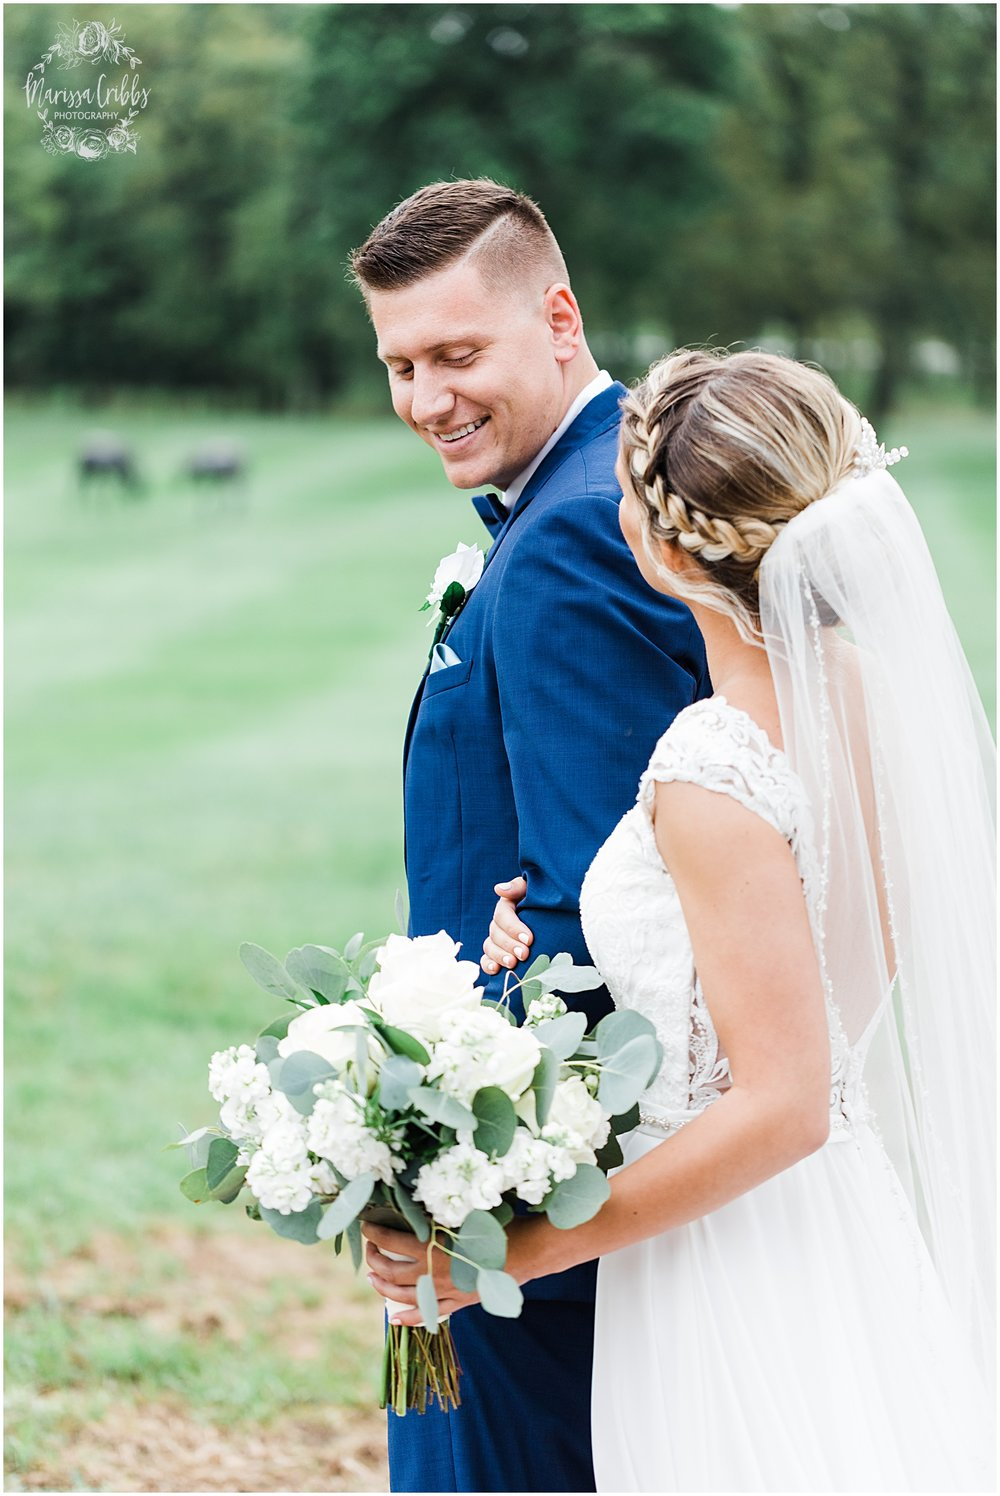 ROUNKLES WEDDING | MARISSA CRIBBS PHOTOGRAPHY | MILDALE FARM_6118.jpg